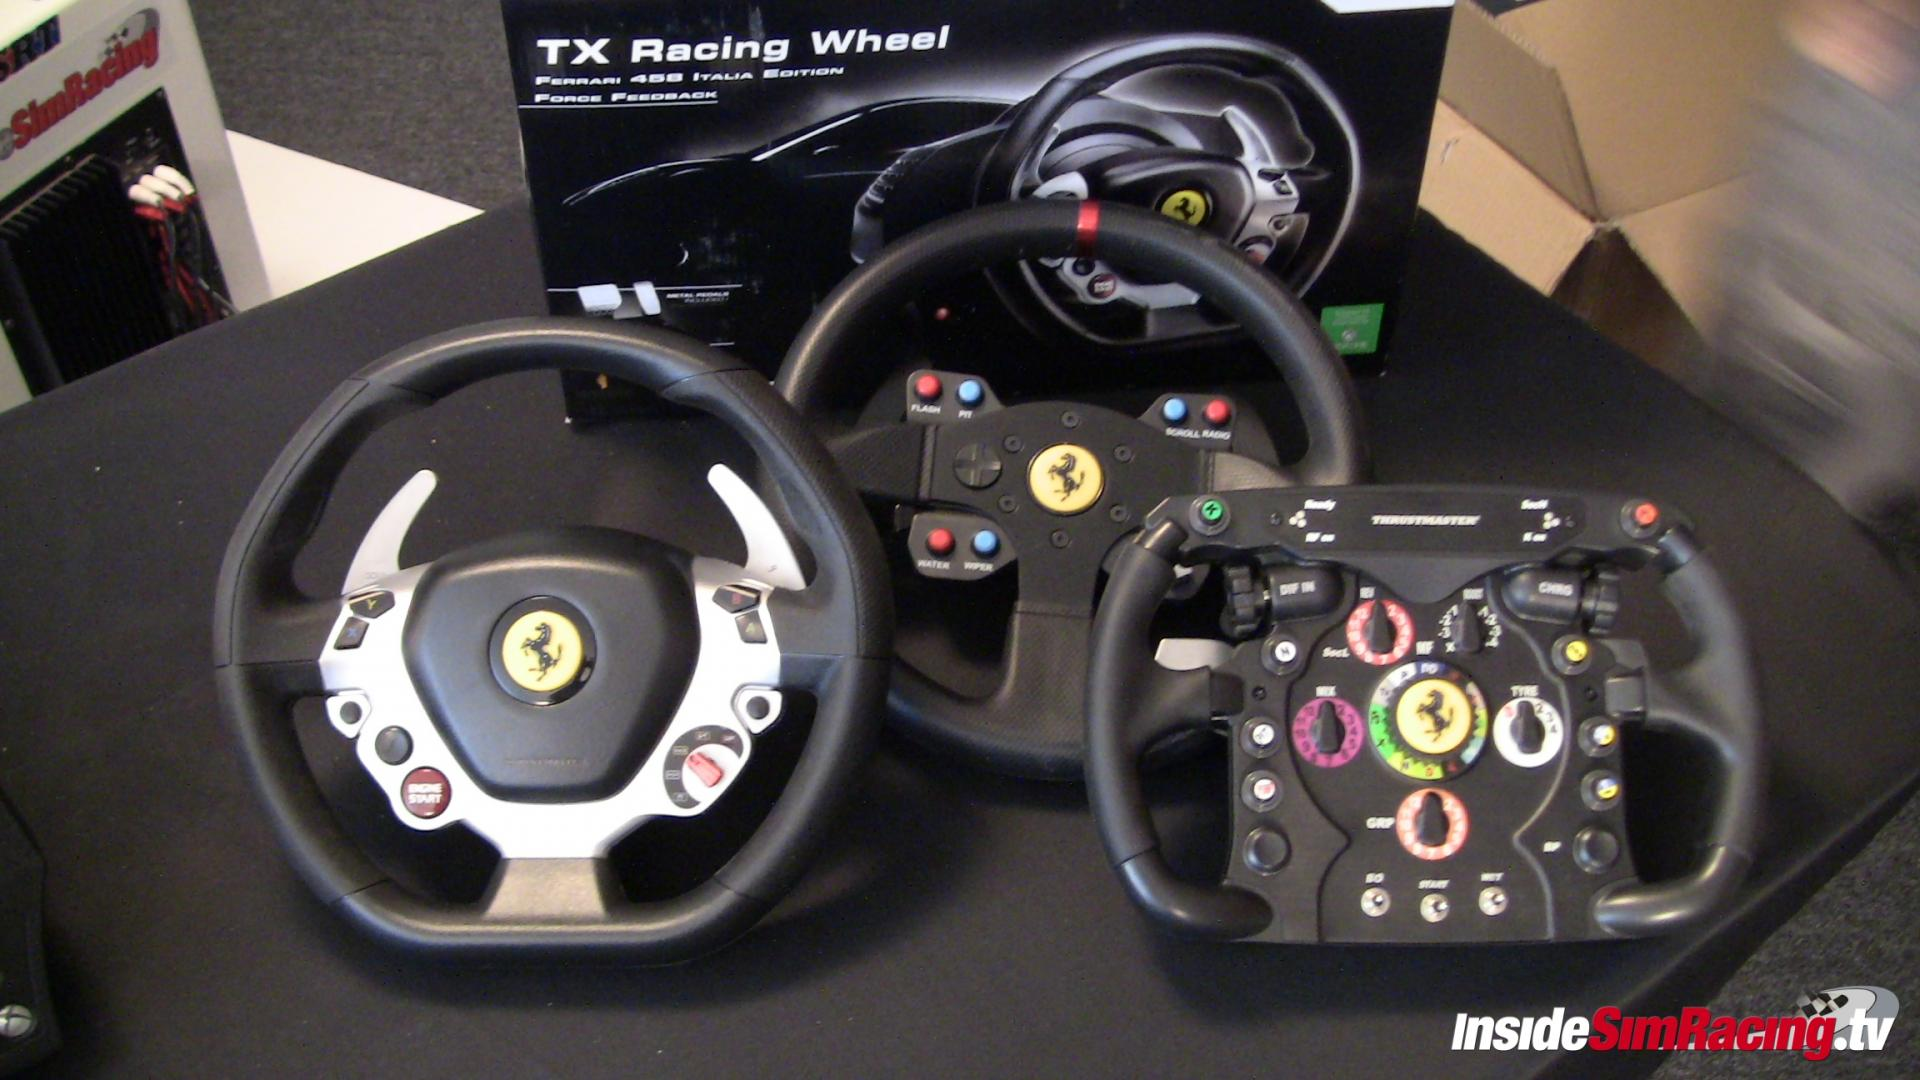 thrustmaster tx racing wheel t3pa pedals first images unboxing vid thrustmaster. Black Bedroom Furniture Sets. Home Design Ideas